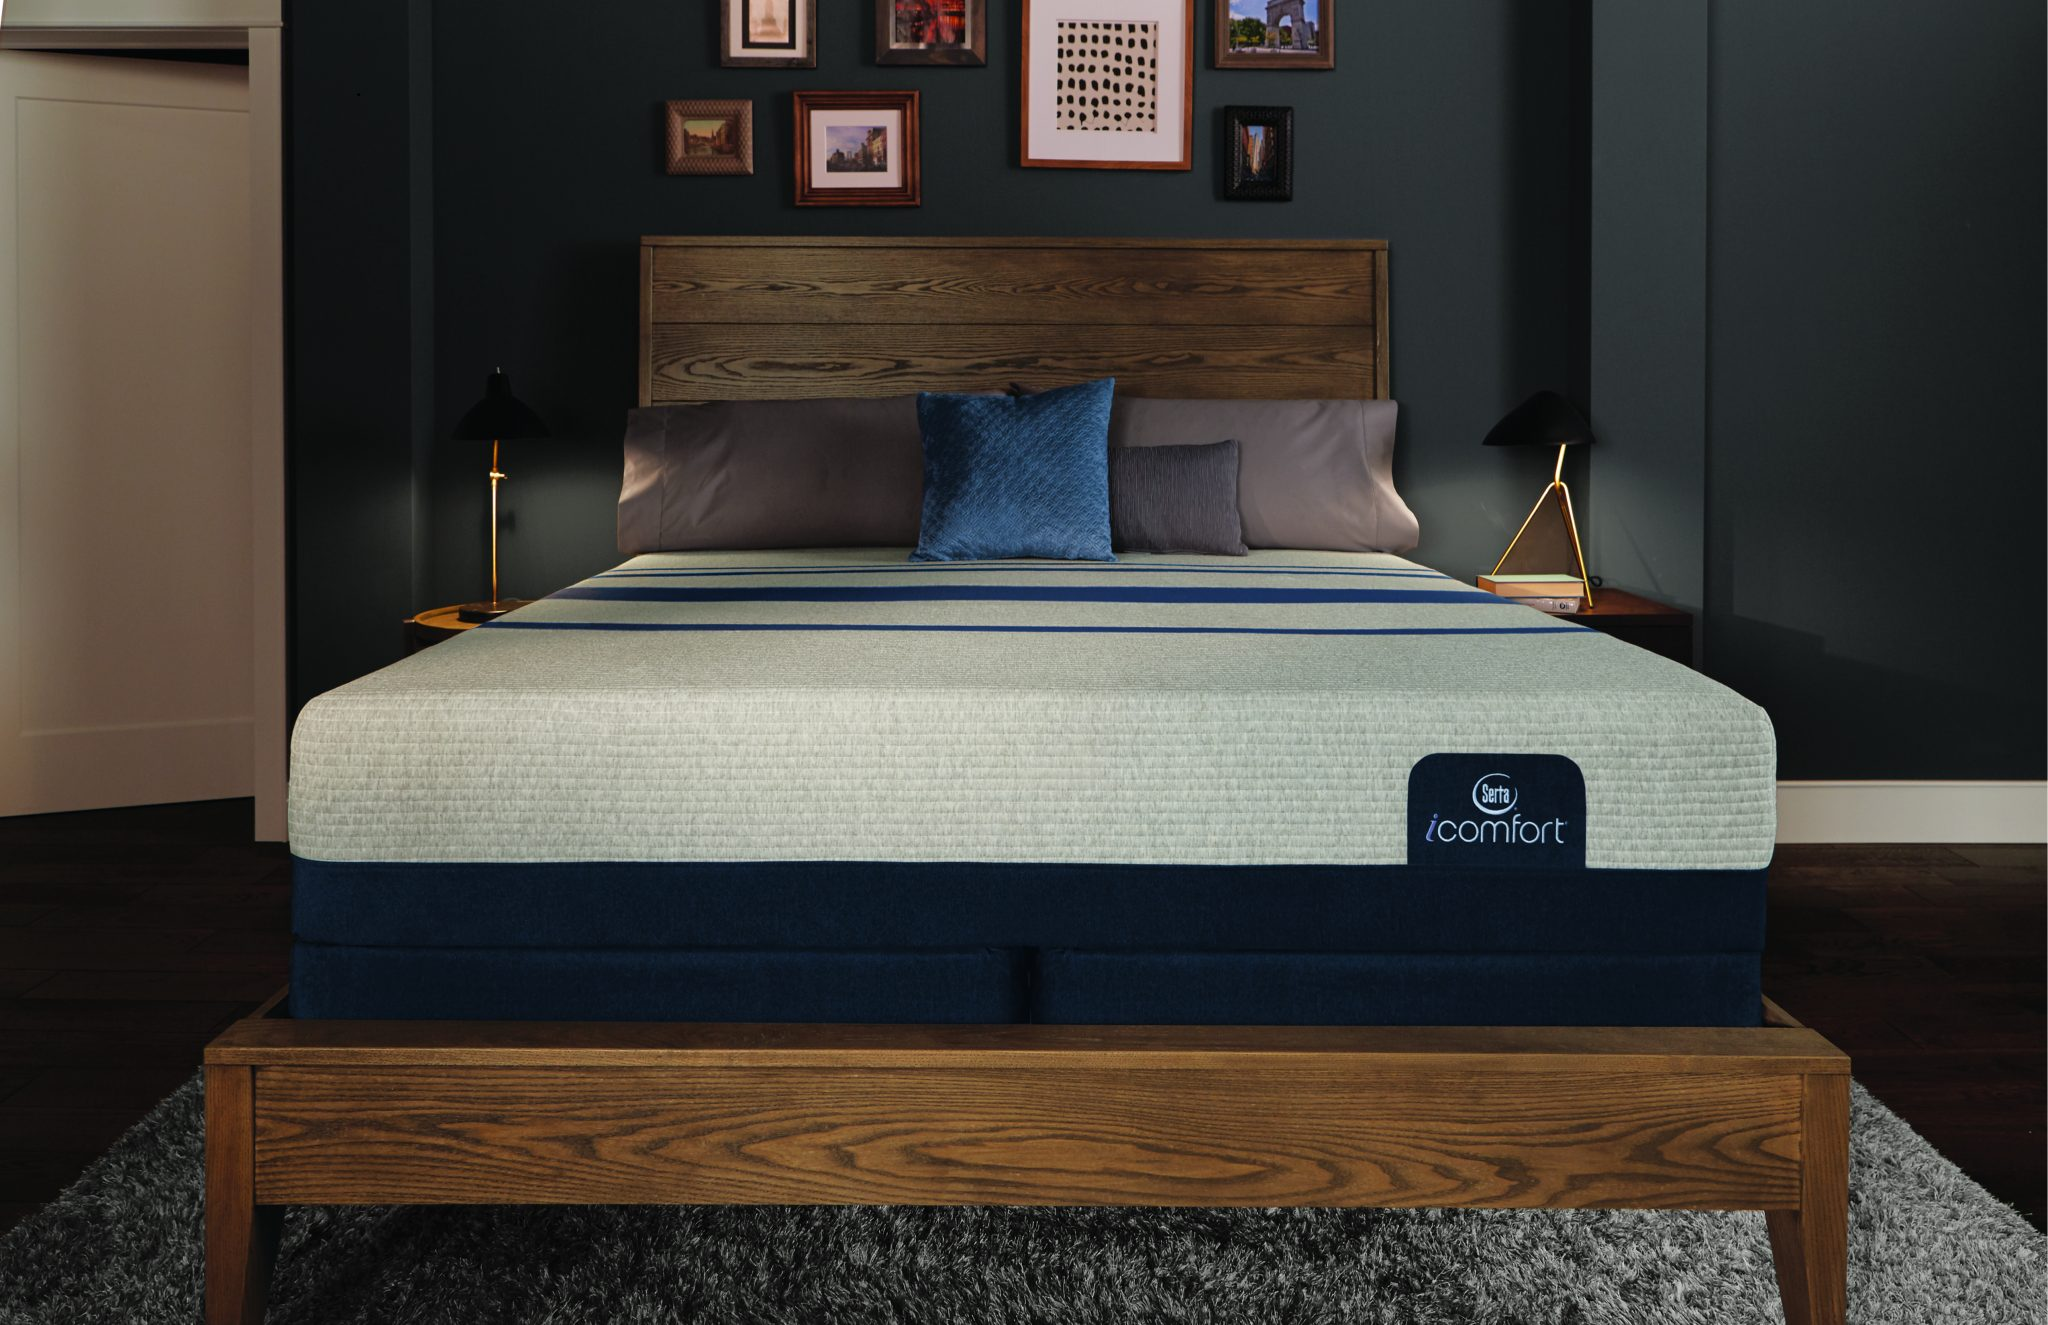 i fort Blue 500 Mattress Best Mattress